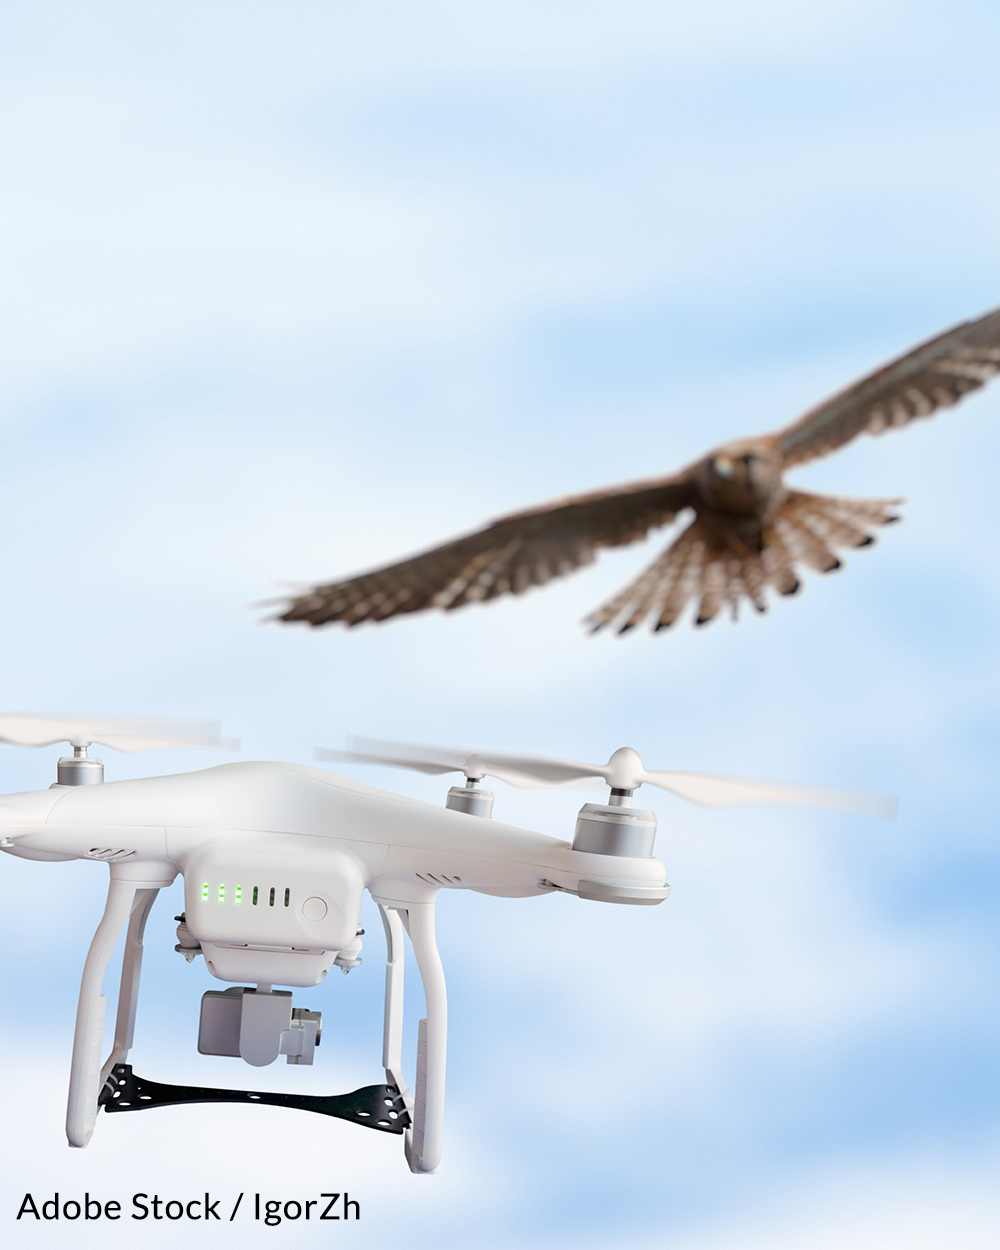 Drone accidents can seriously injure birds.